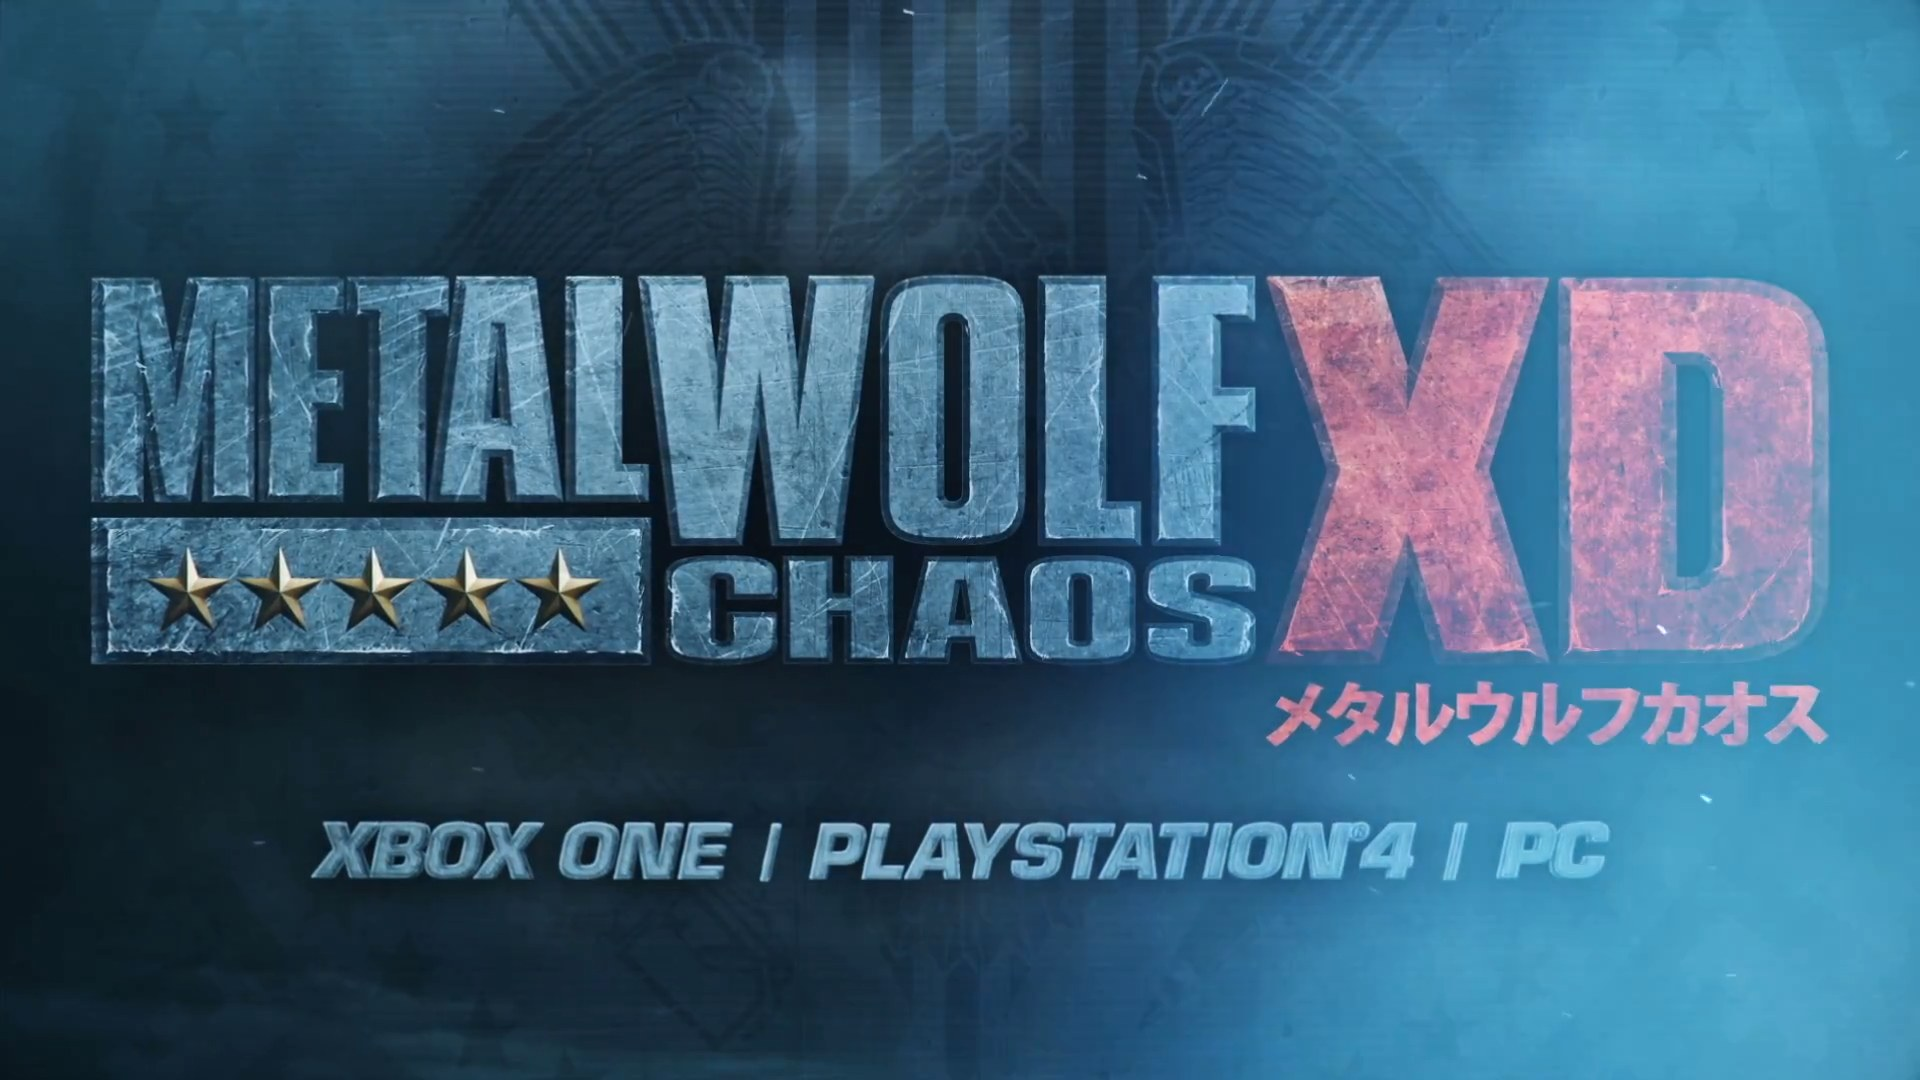 Metal Wolf Chaos XD announced for PS4, Xbox One, and PC